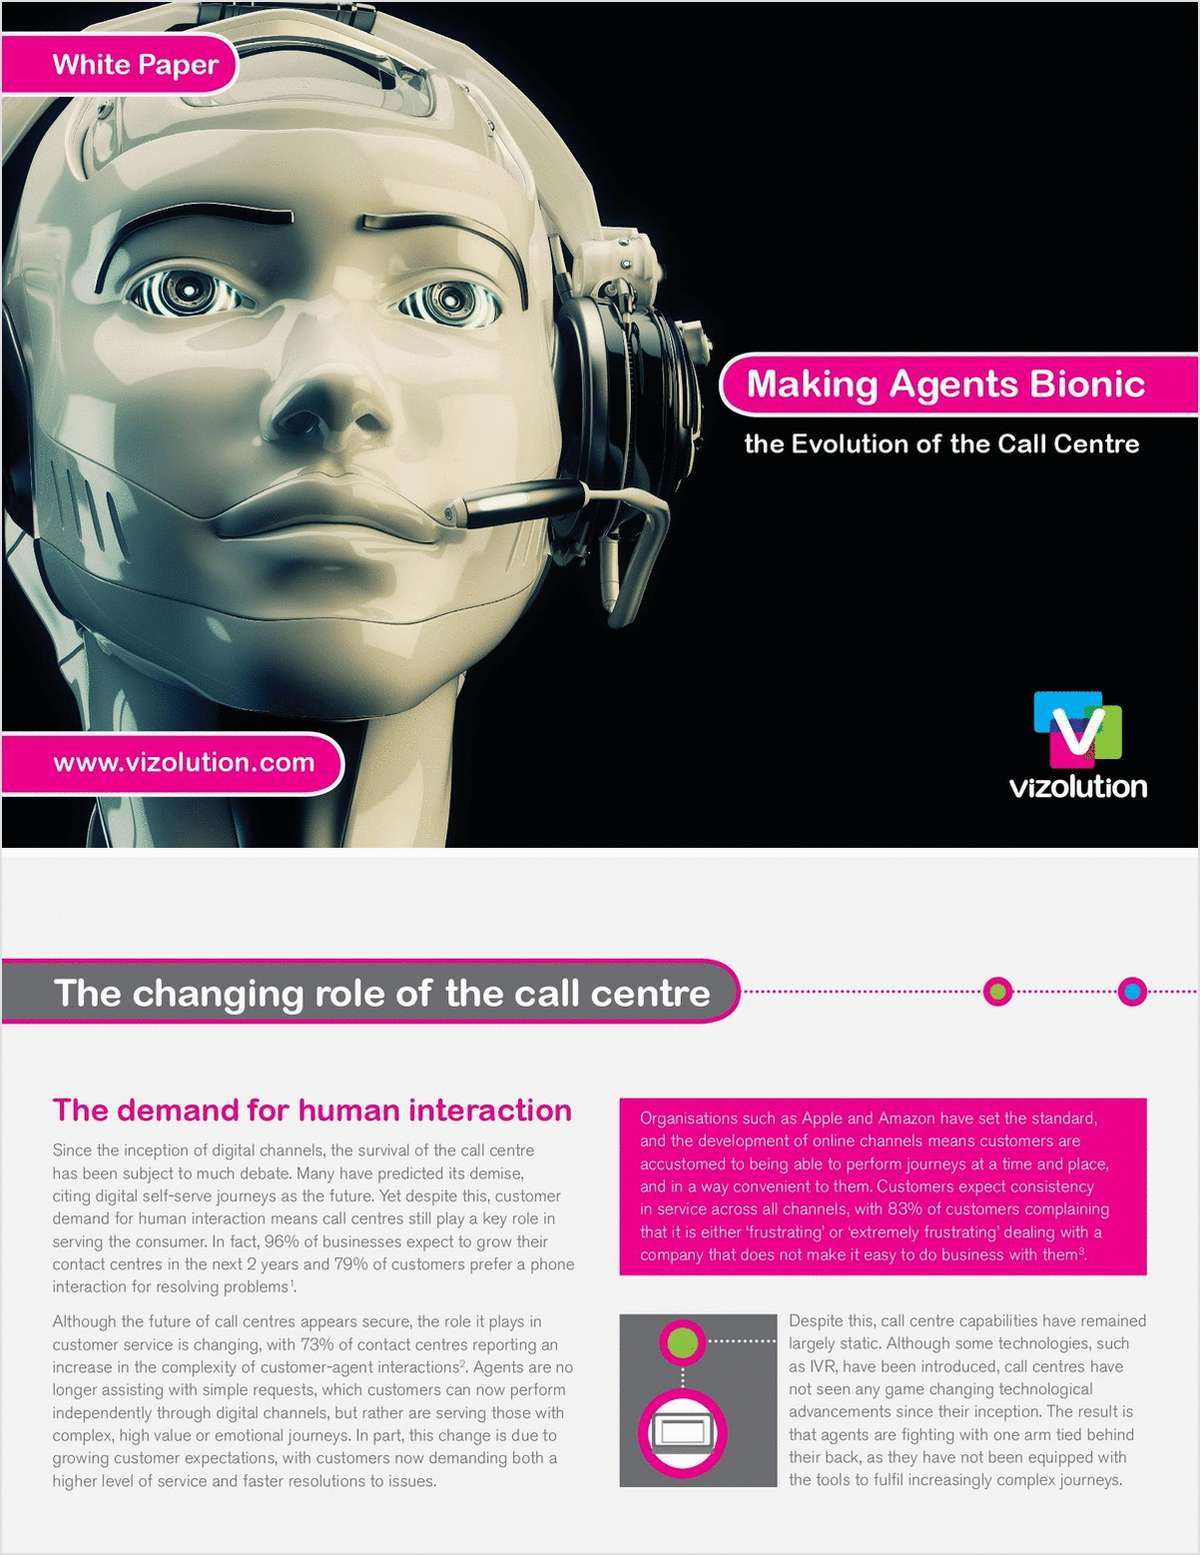 Making Agents Bionic: The Evolution of the Call Centre- UK